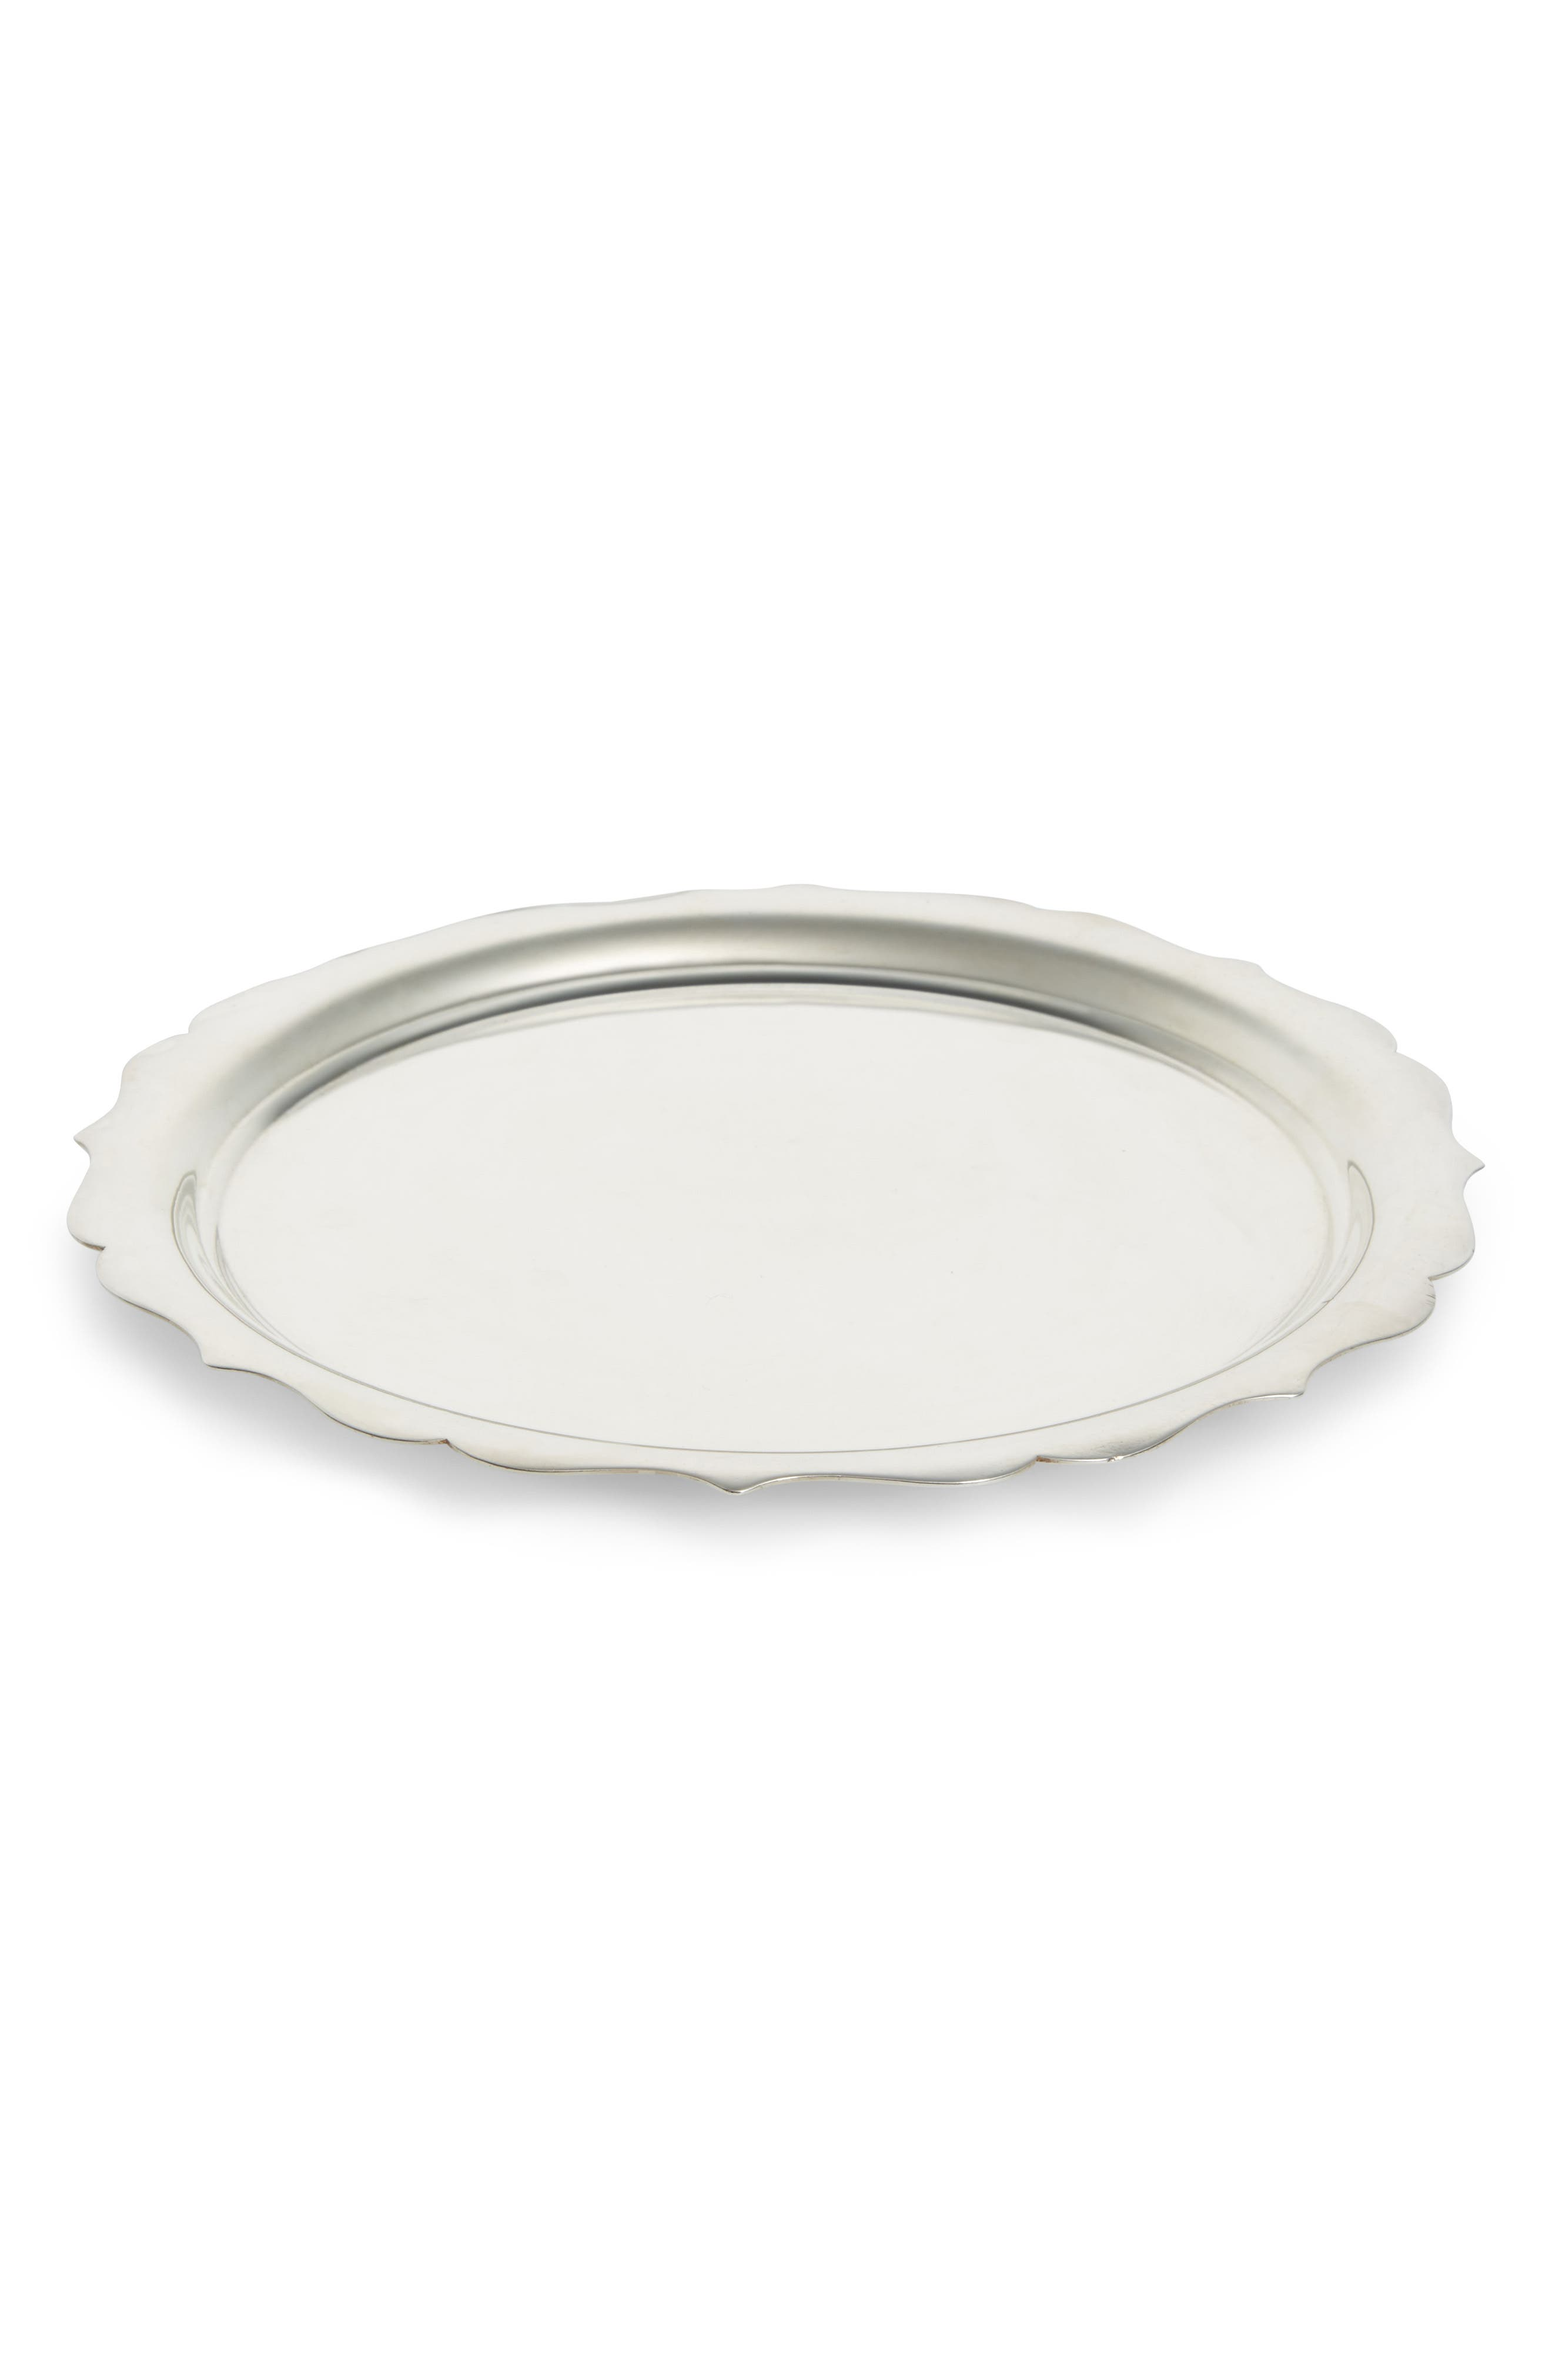 Walker & Hall One of a Kind Vintage Silver Plated Catchall,                             Main thumbnail 1, color,                             Plated Silver